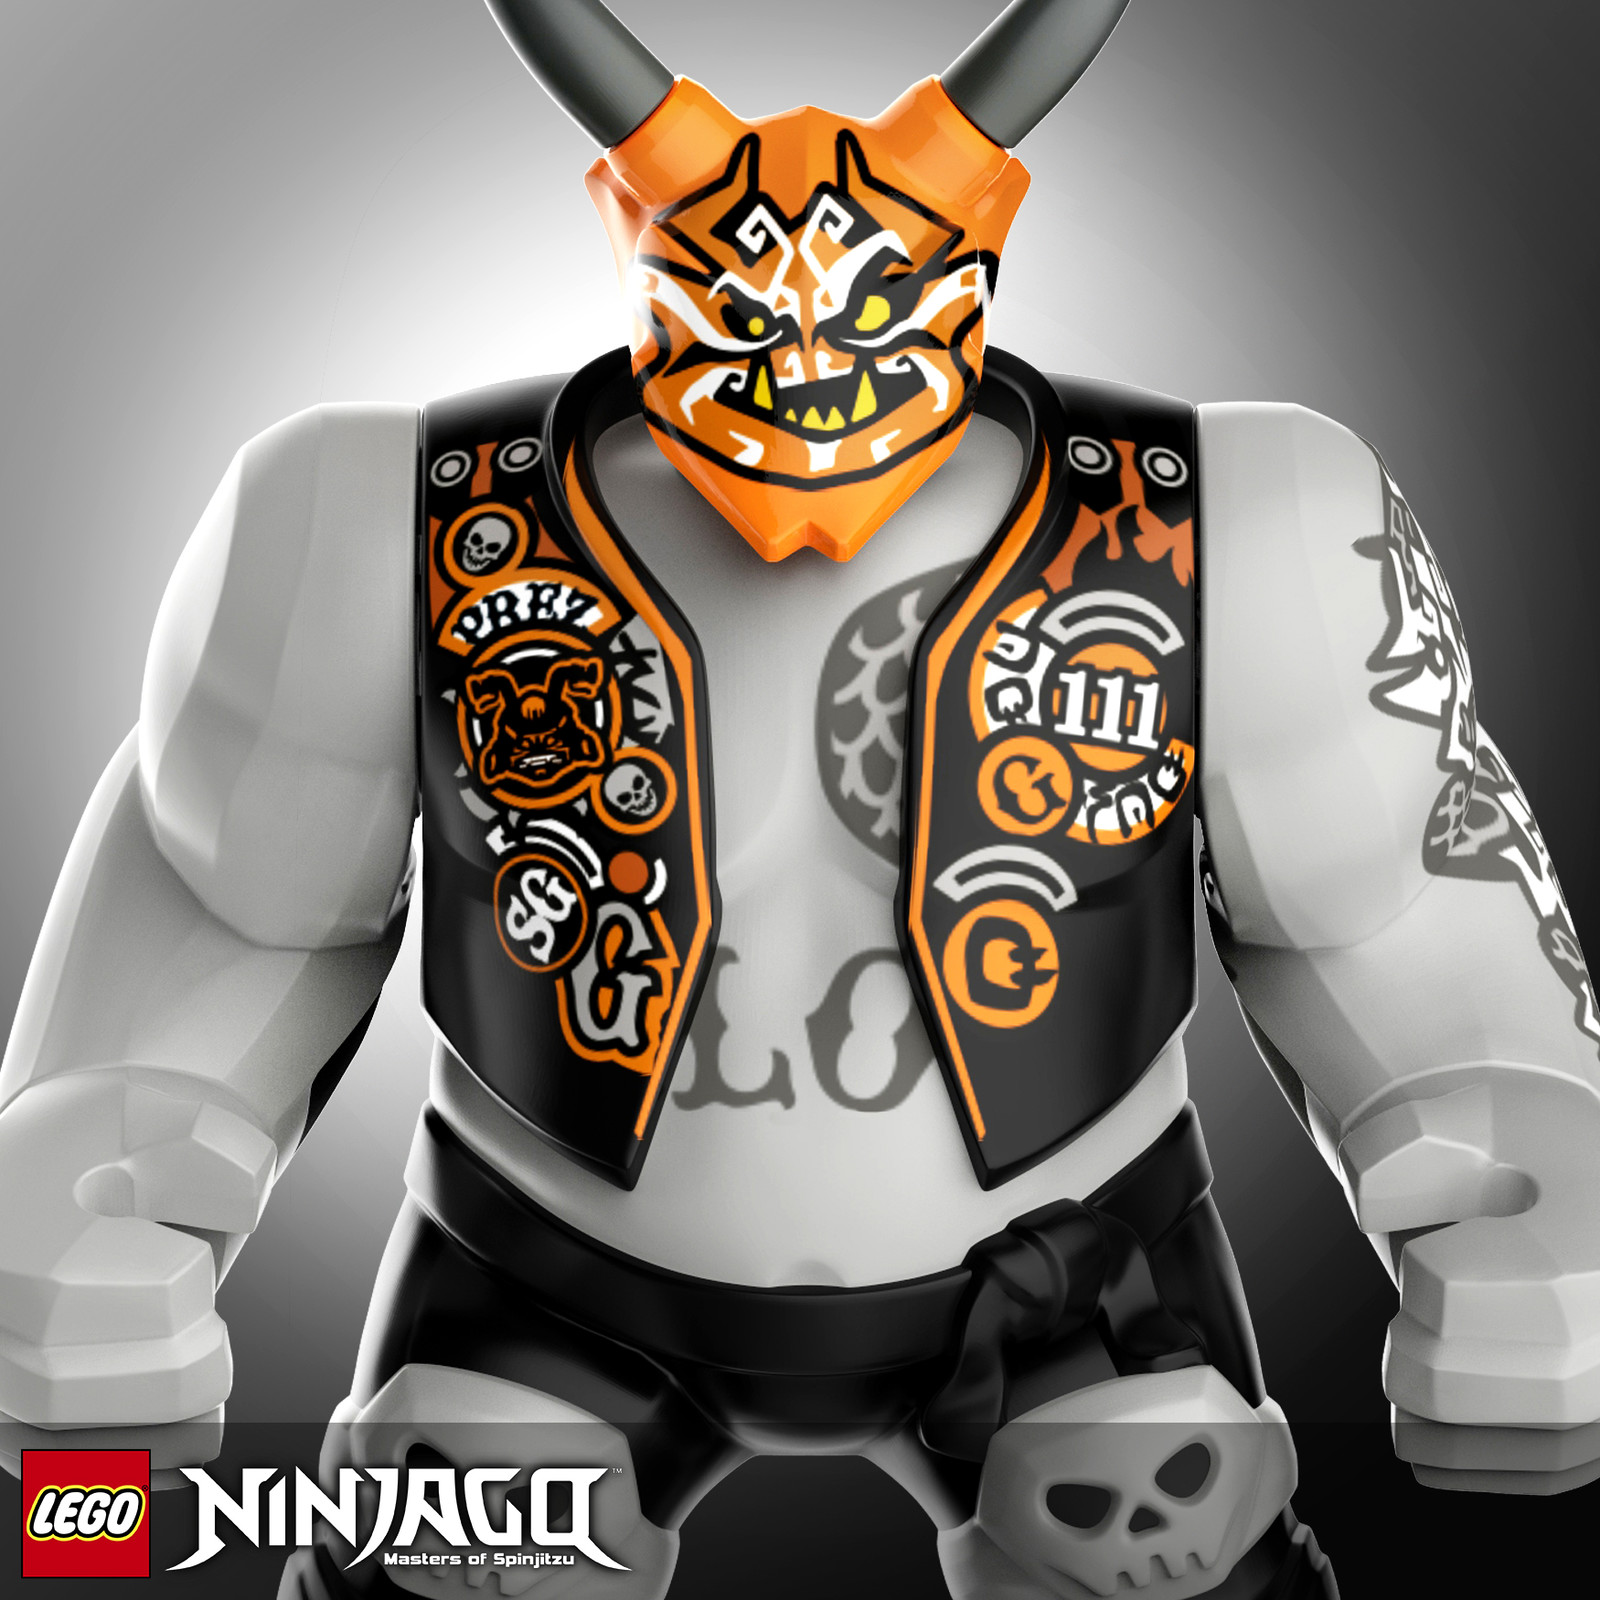 KILLOW Ninjago Bigfig